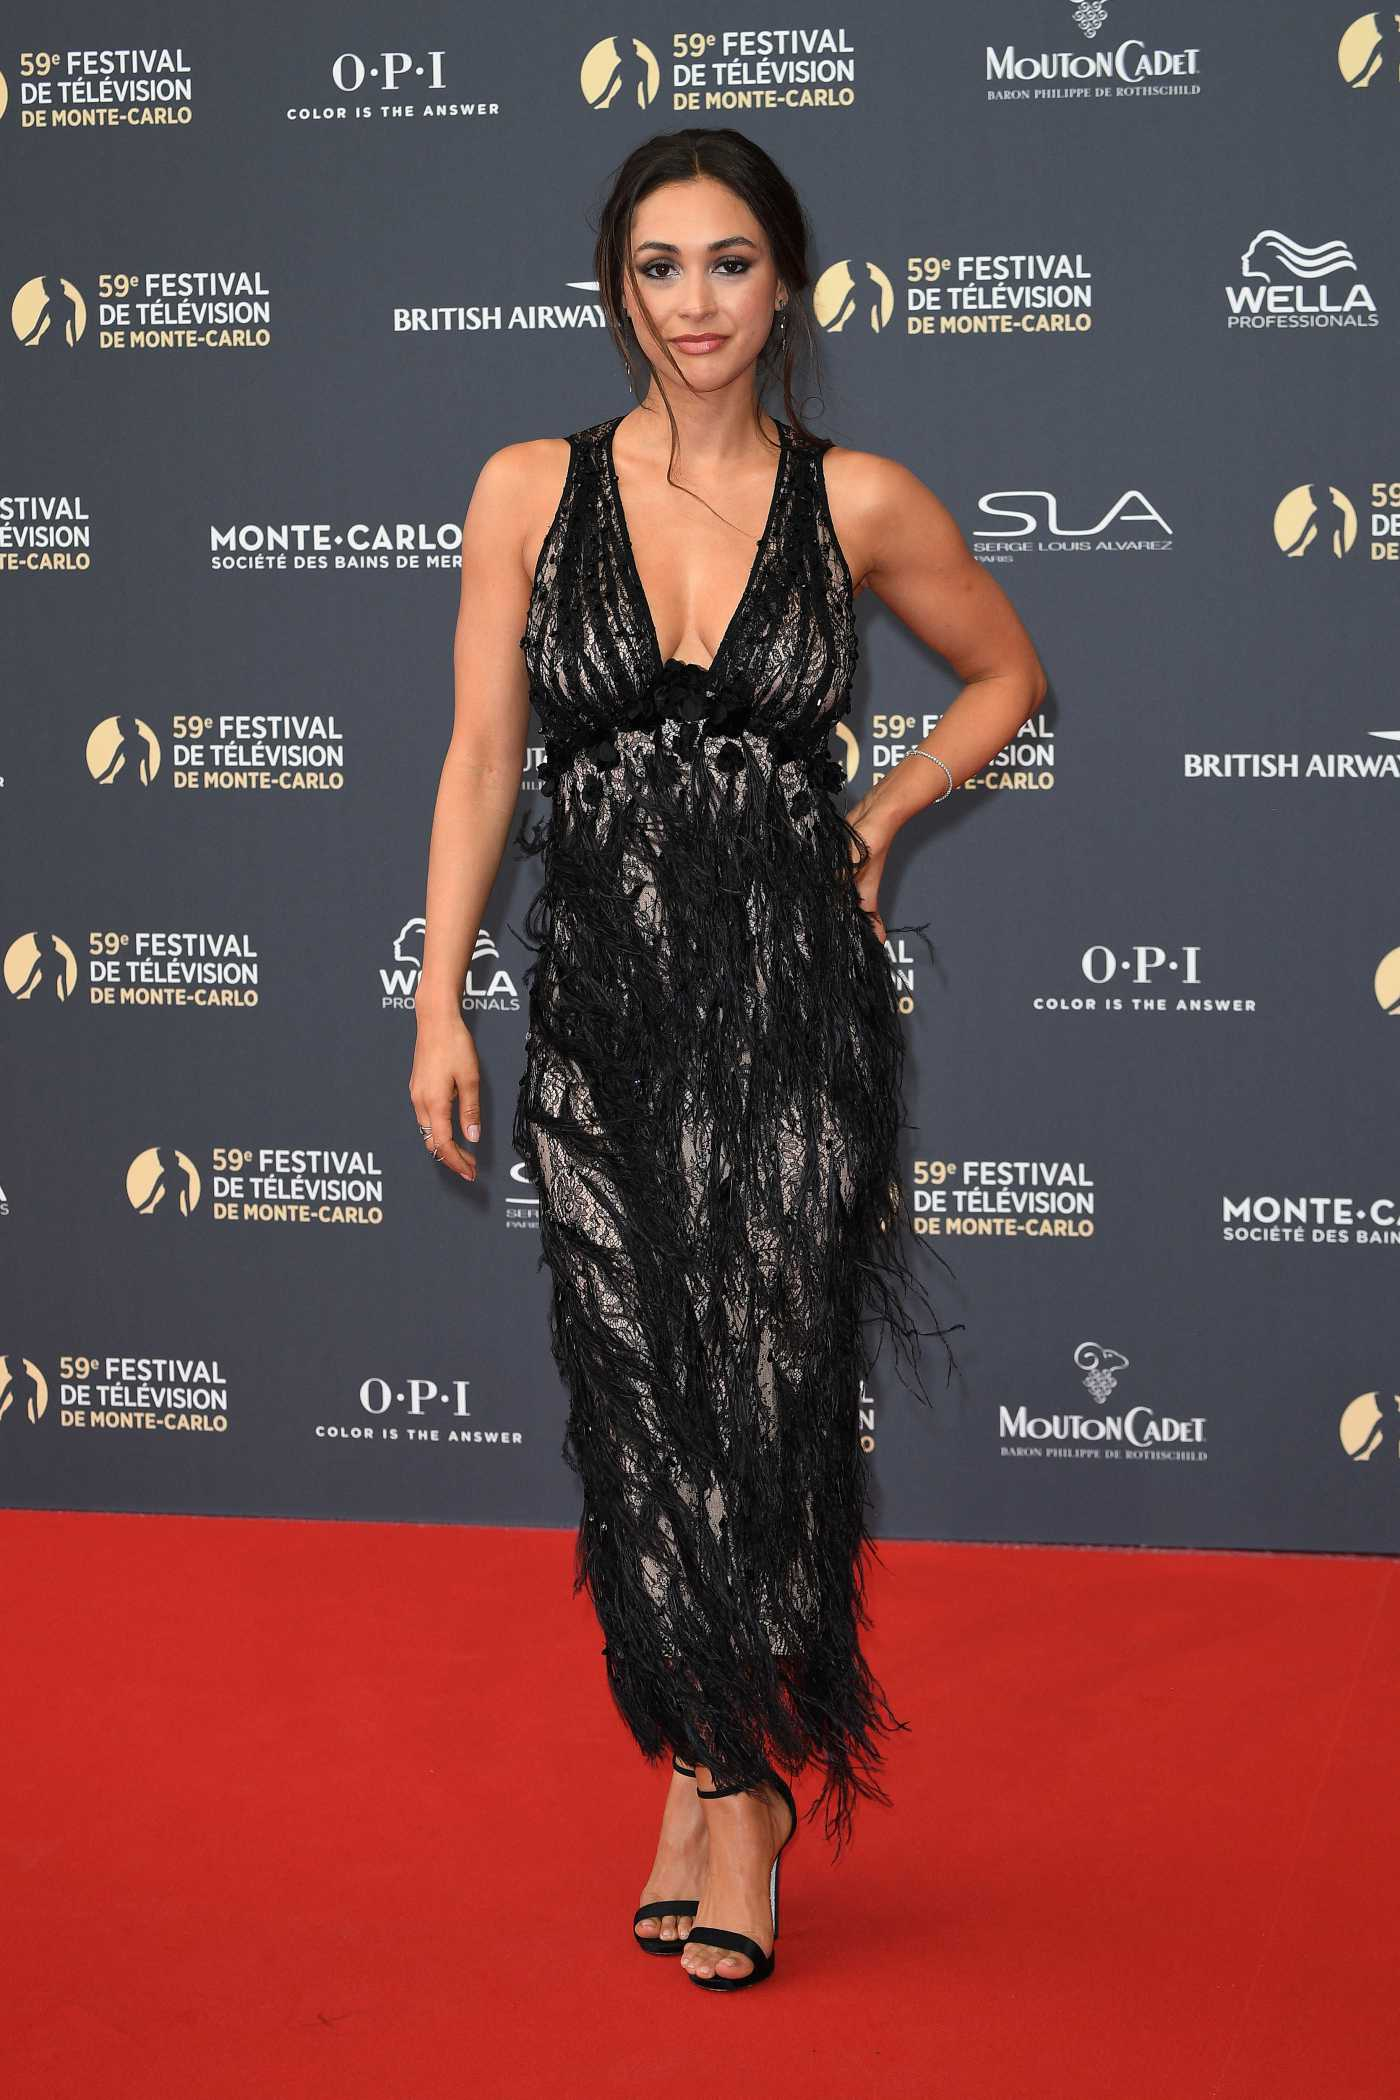 Lindsey Morgan Attends the 59th Monte Carlo TV Festival Opening Ceremony in Monte-Carlo 06/14/2019